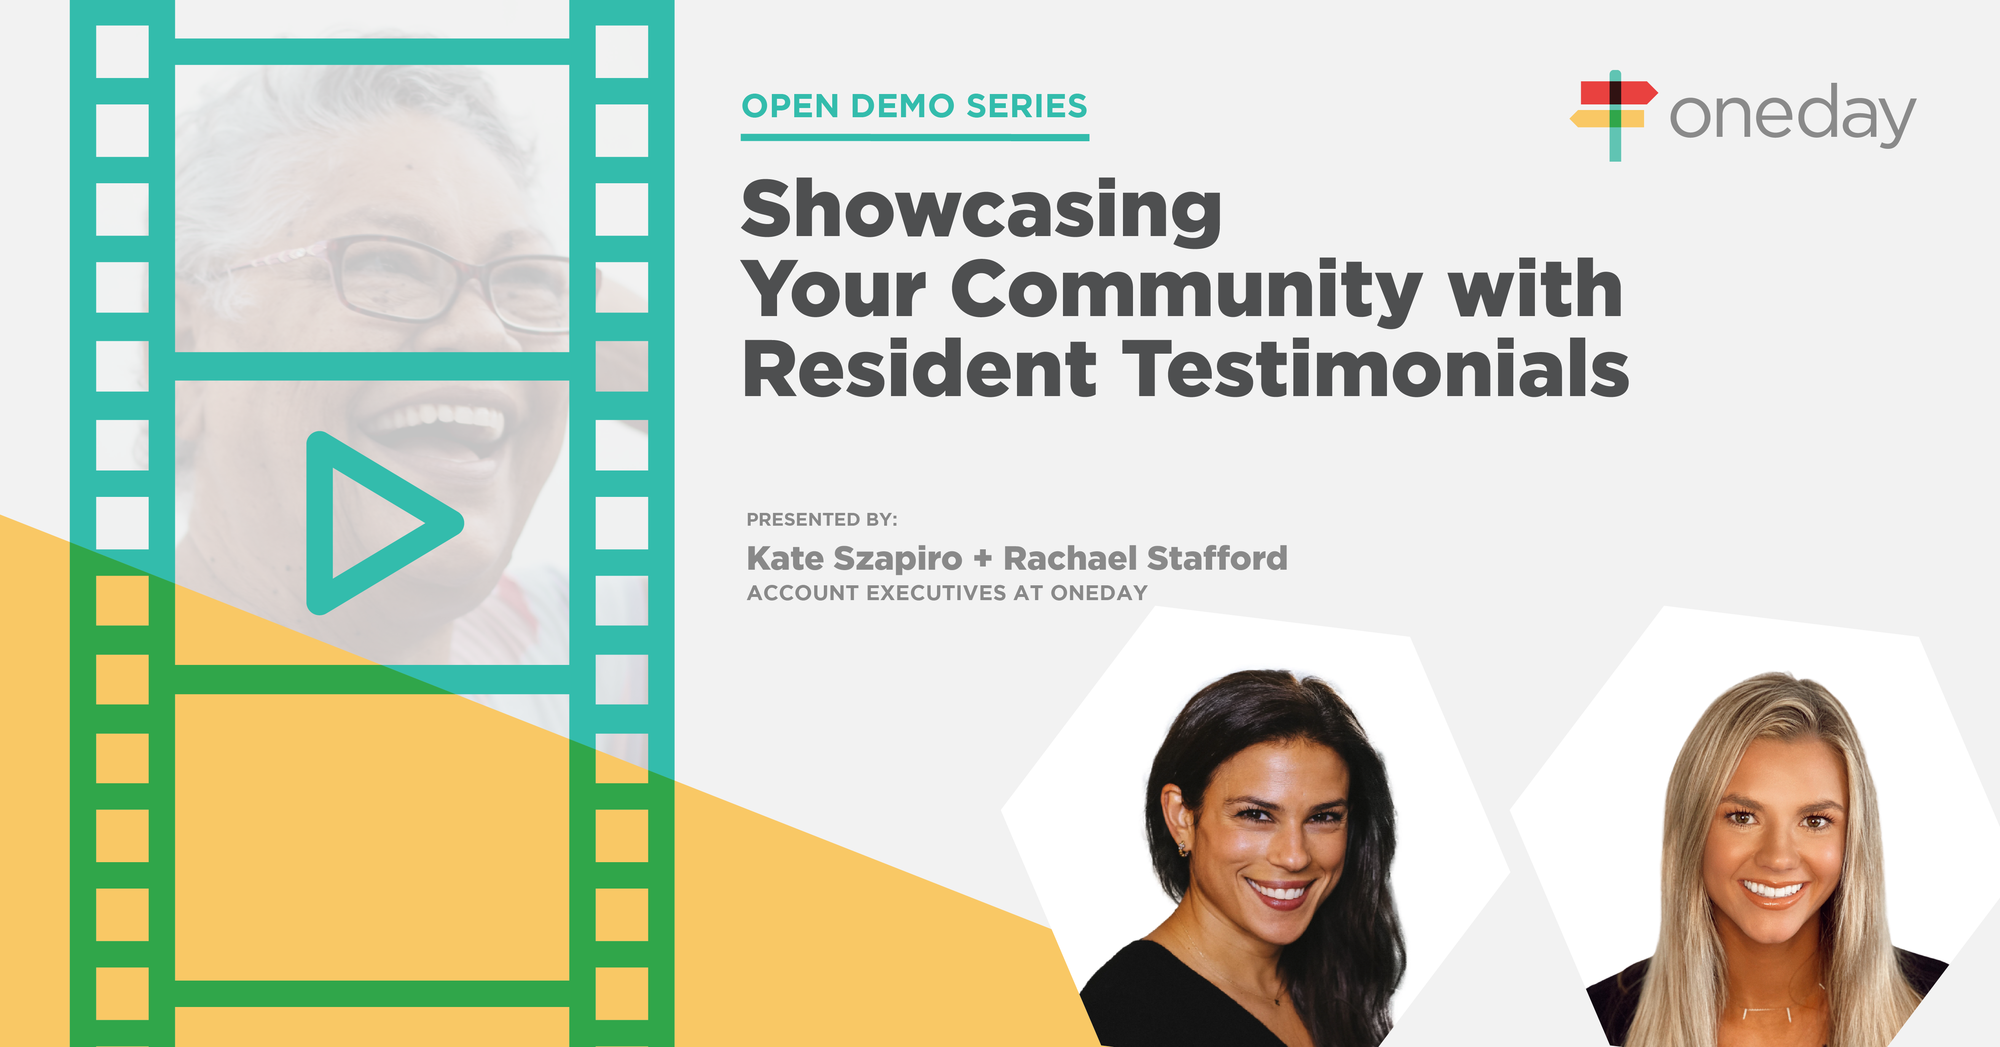 Showcasing Your Community with Resident Testimonials